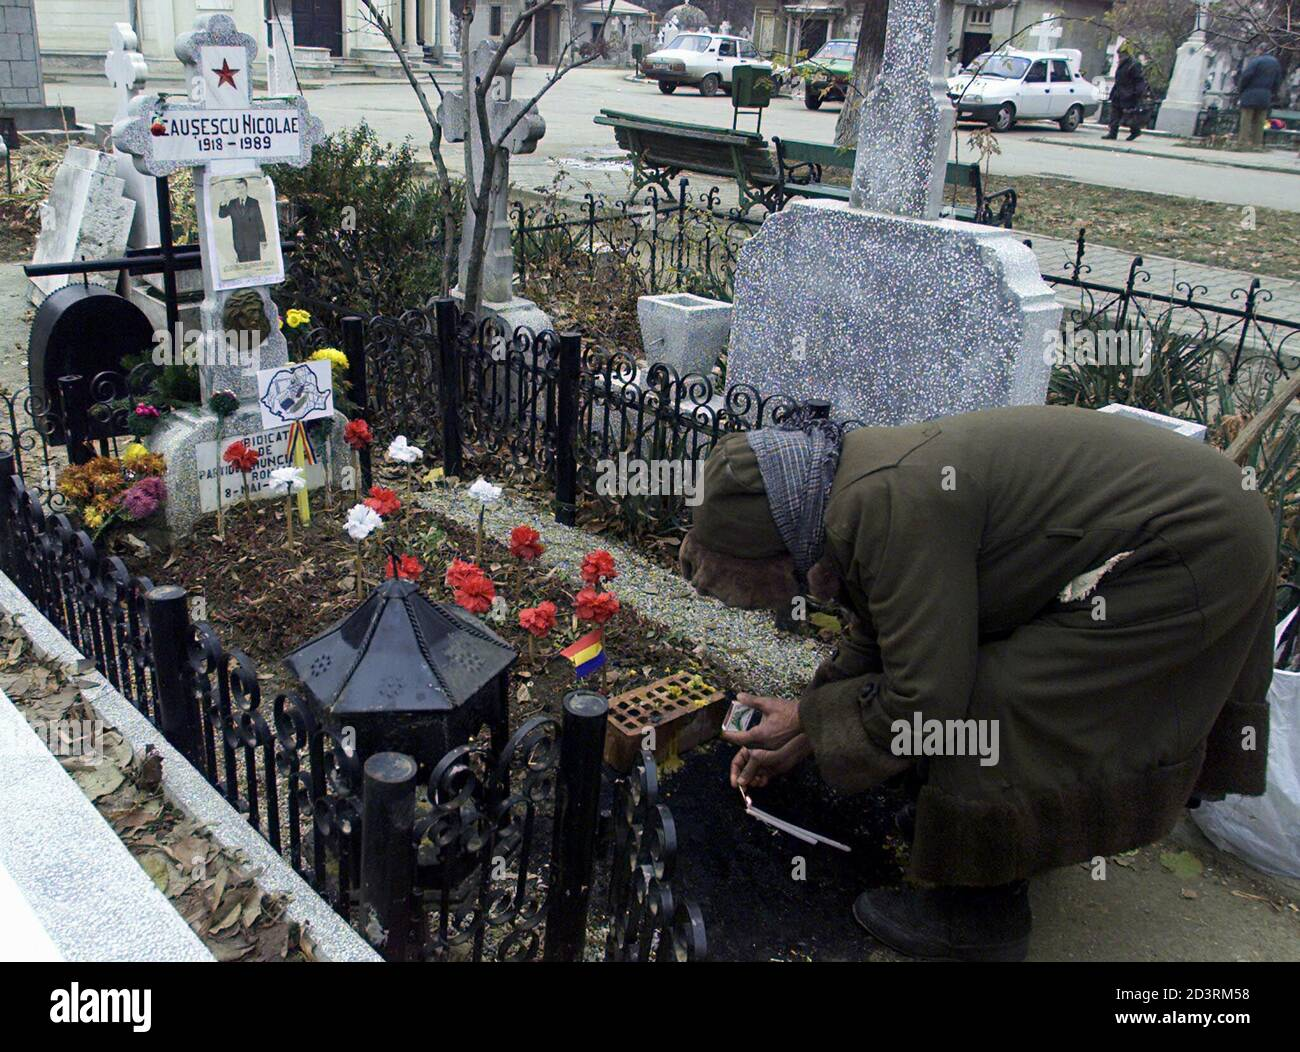 A Romanian woman lights candles at the grave where the late Stalinist dictator Nicolae Ceausescu is buried in a Bucharest cemetery after being shot on Christmas Day, 1989. Frustration with the slow pace of post-communist reform and the decline in living standards for many since the revolution has left a small minority longing for the return of the certainties of the Ceausescu era. Picture taken December 13, 2001. TO GO WITH FEATURE BC-ROMANIA-CEAUSESCU-EXECUTION. REUTERS/Bogdan Cristel REUTERS  BC/AA Stock Photo